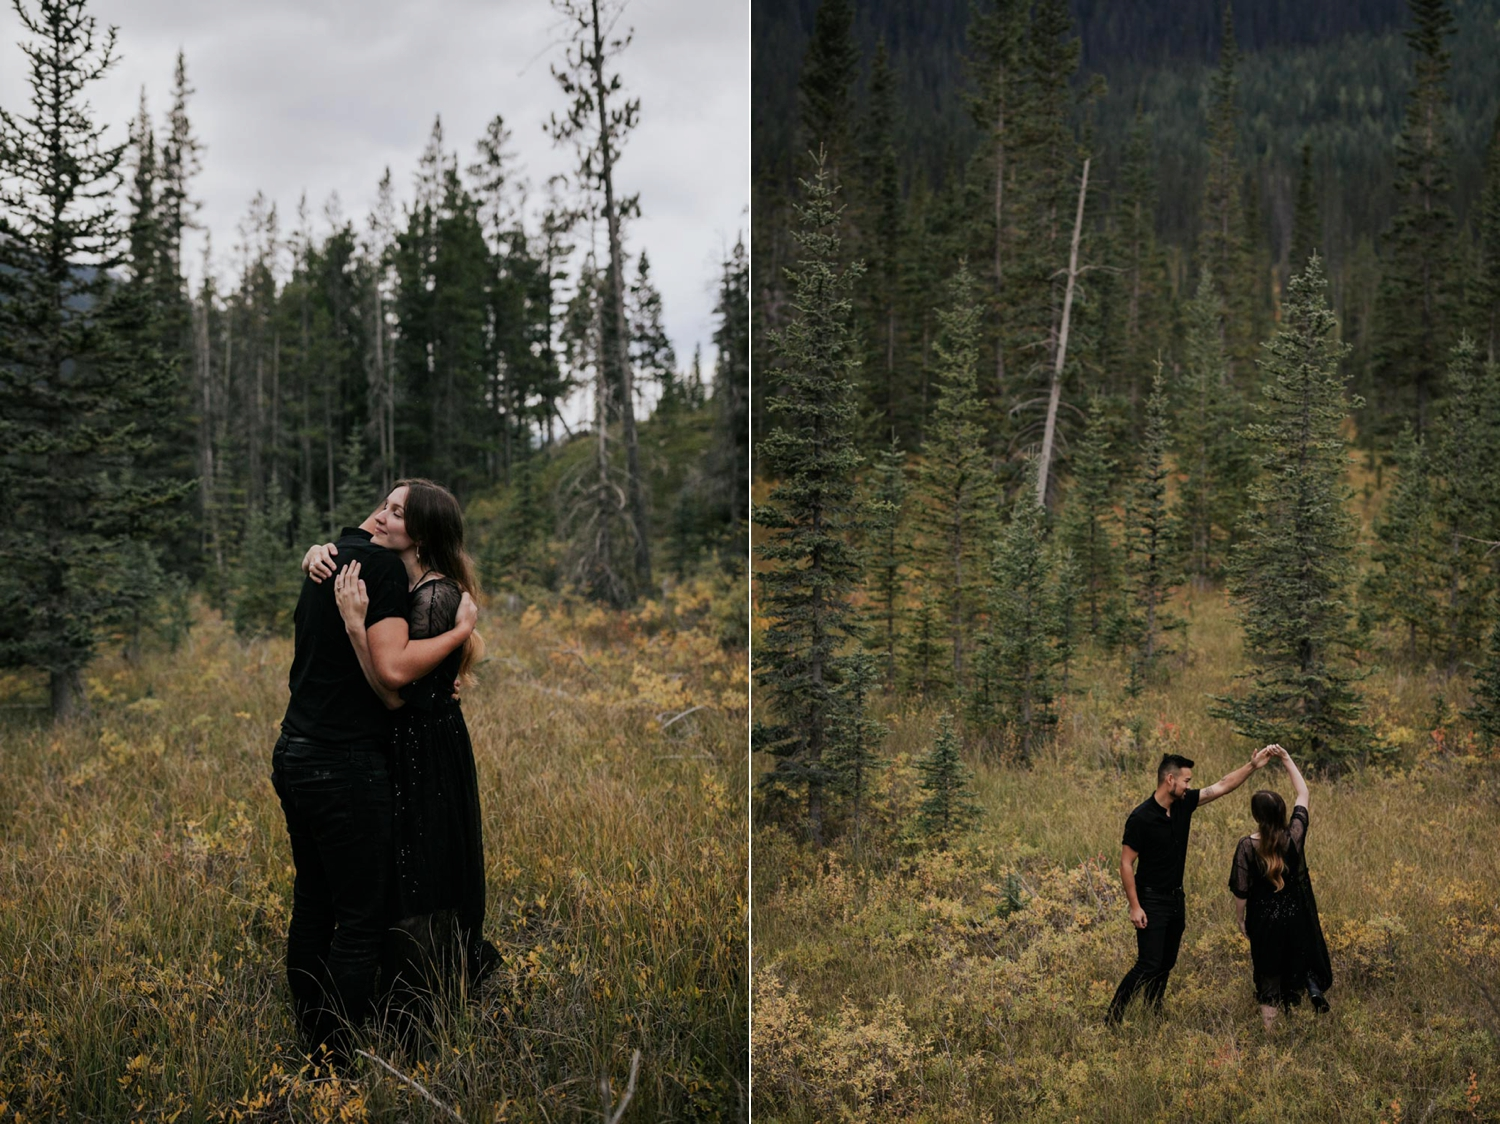 Engaged Hipster Alternative Couple Dancing Hugging In BC Forest And Yellow Field